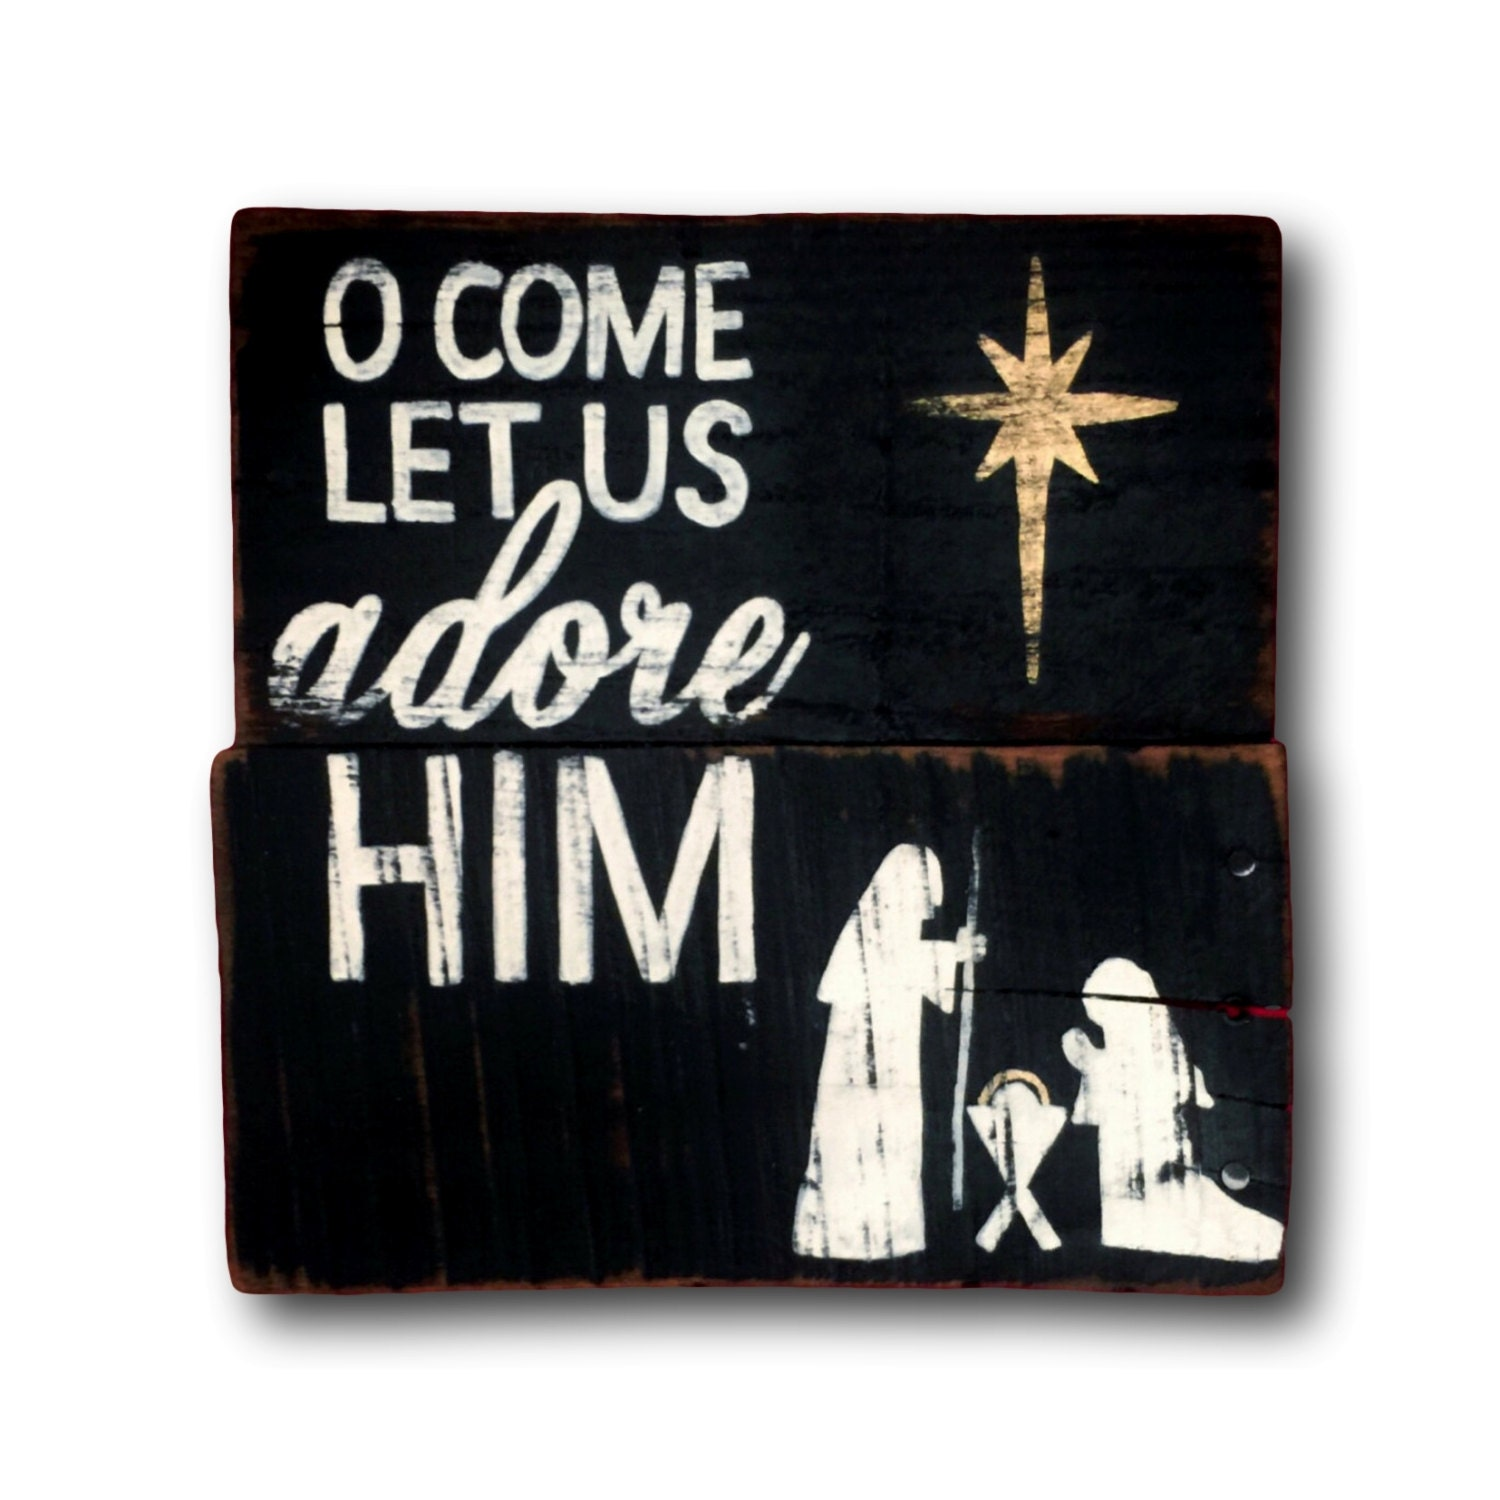 Oh Come Let Us Adore Him Wood Signs Christmas Signs Wood: O Come Let Us Adore Him Sign / Christmas Decoration / Rustic